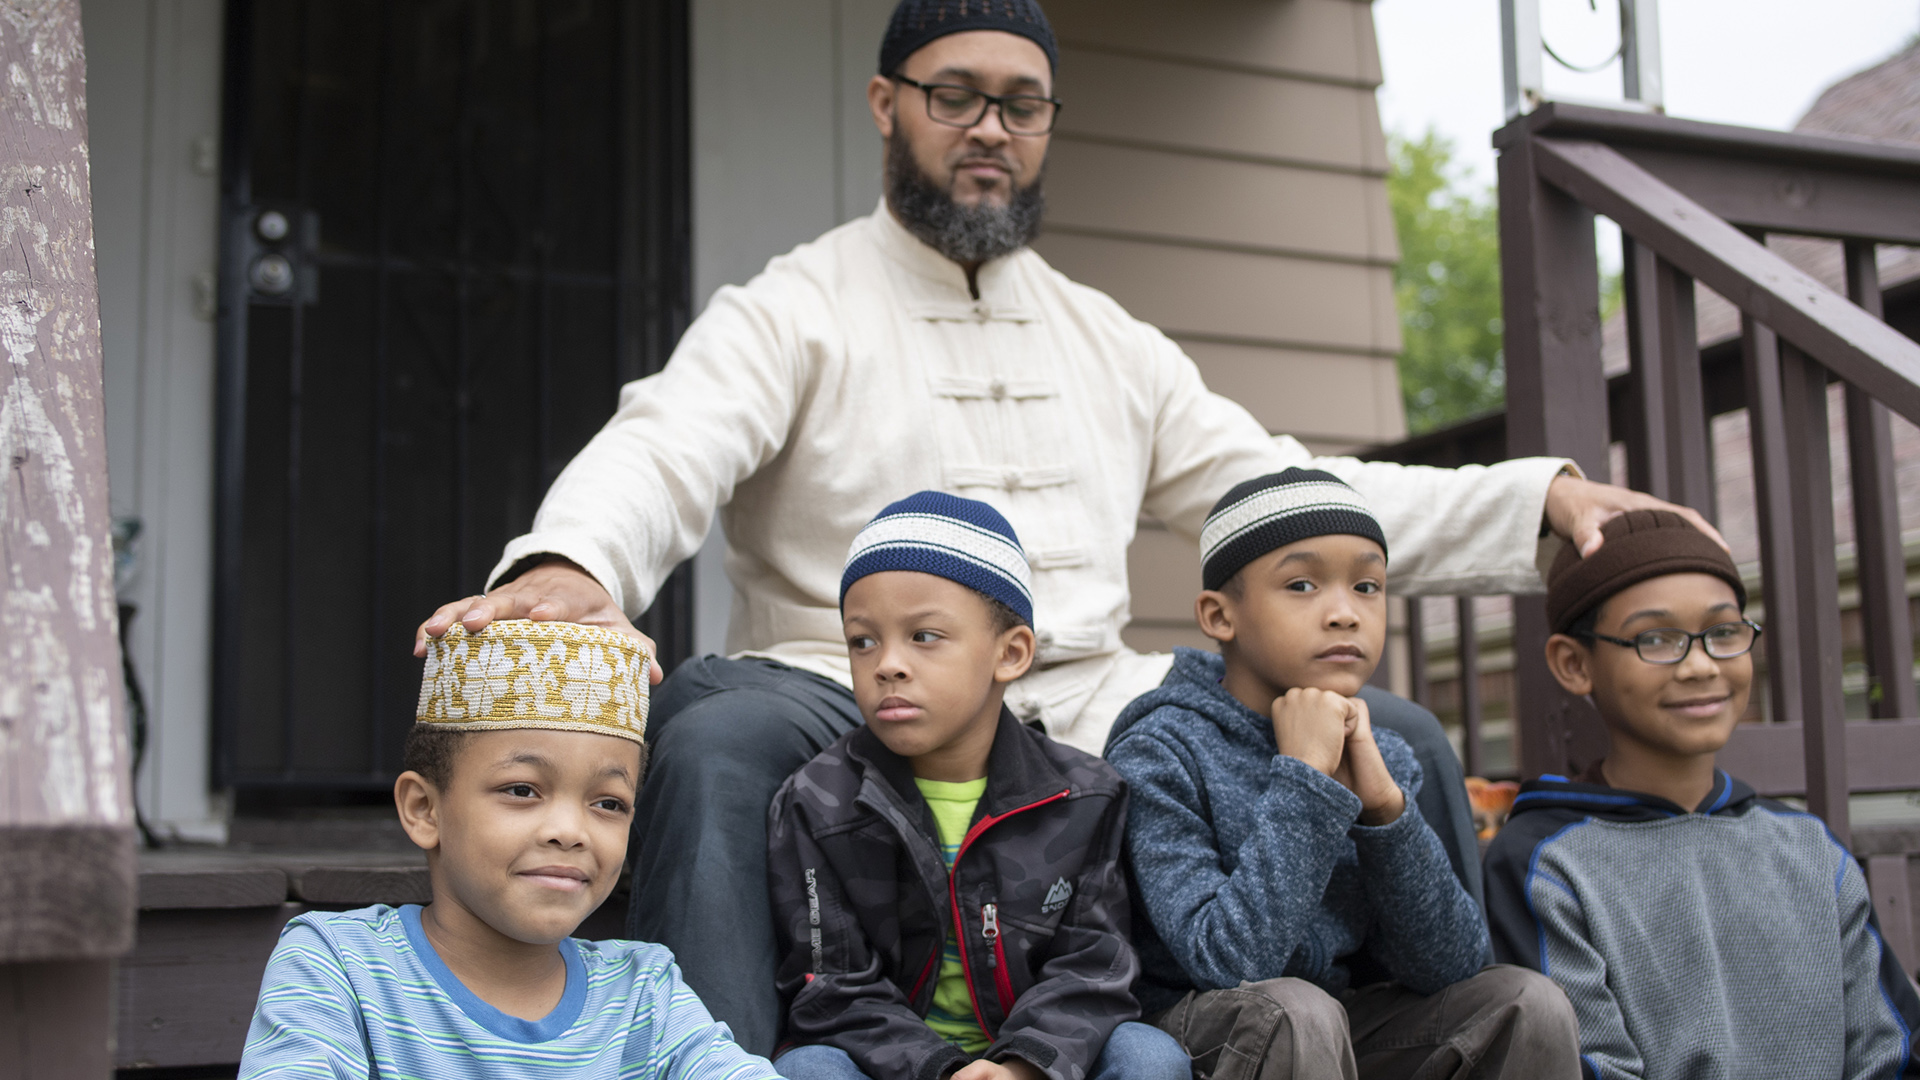 Nazir Al-Mujaahid sits on the front steps of a house with four children.